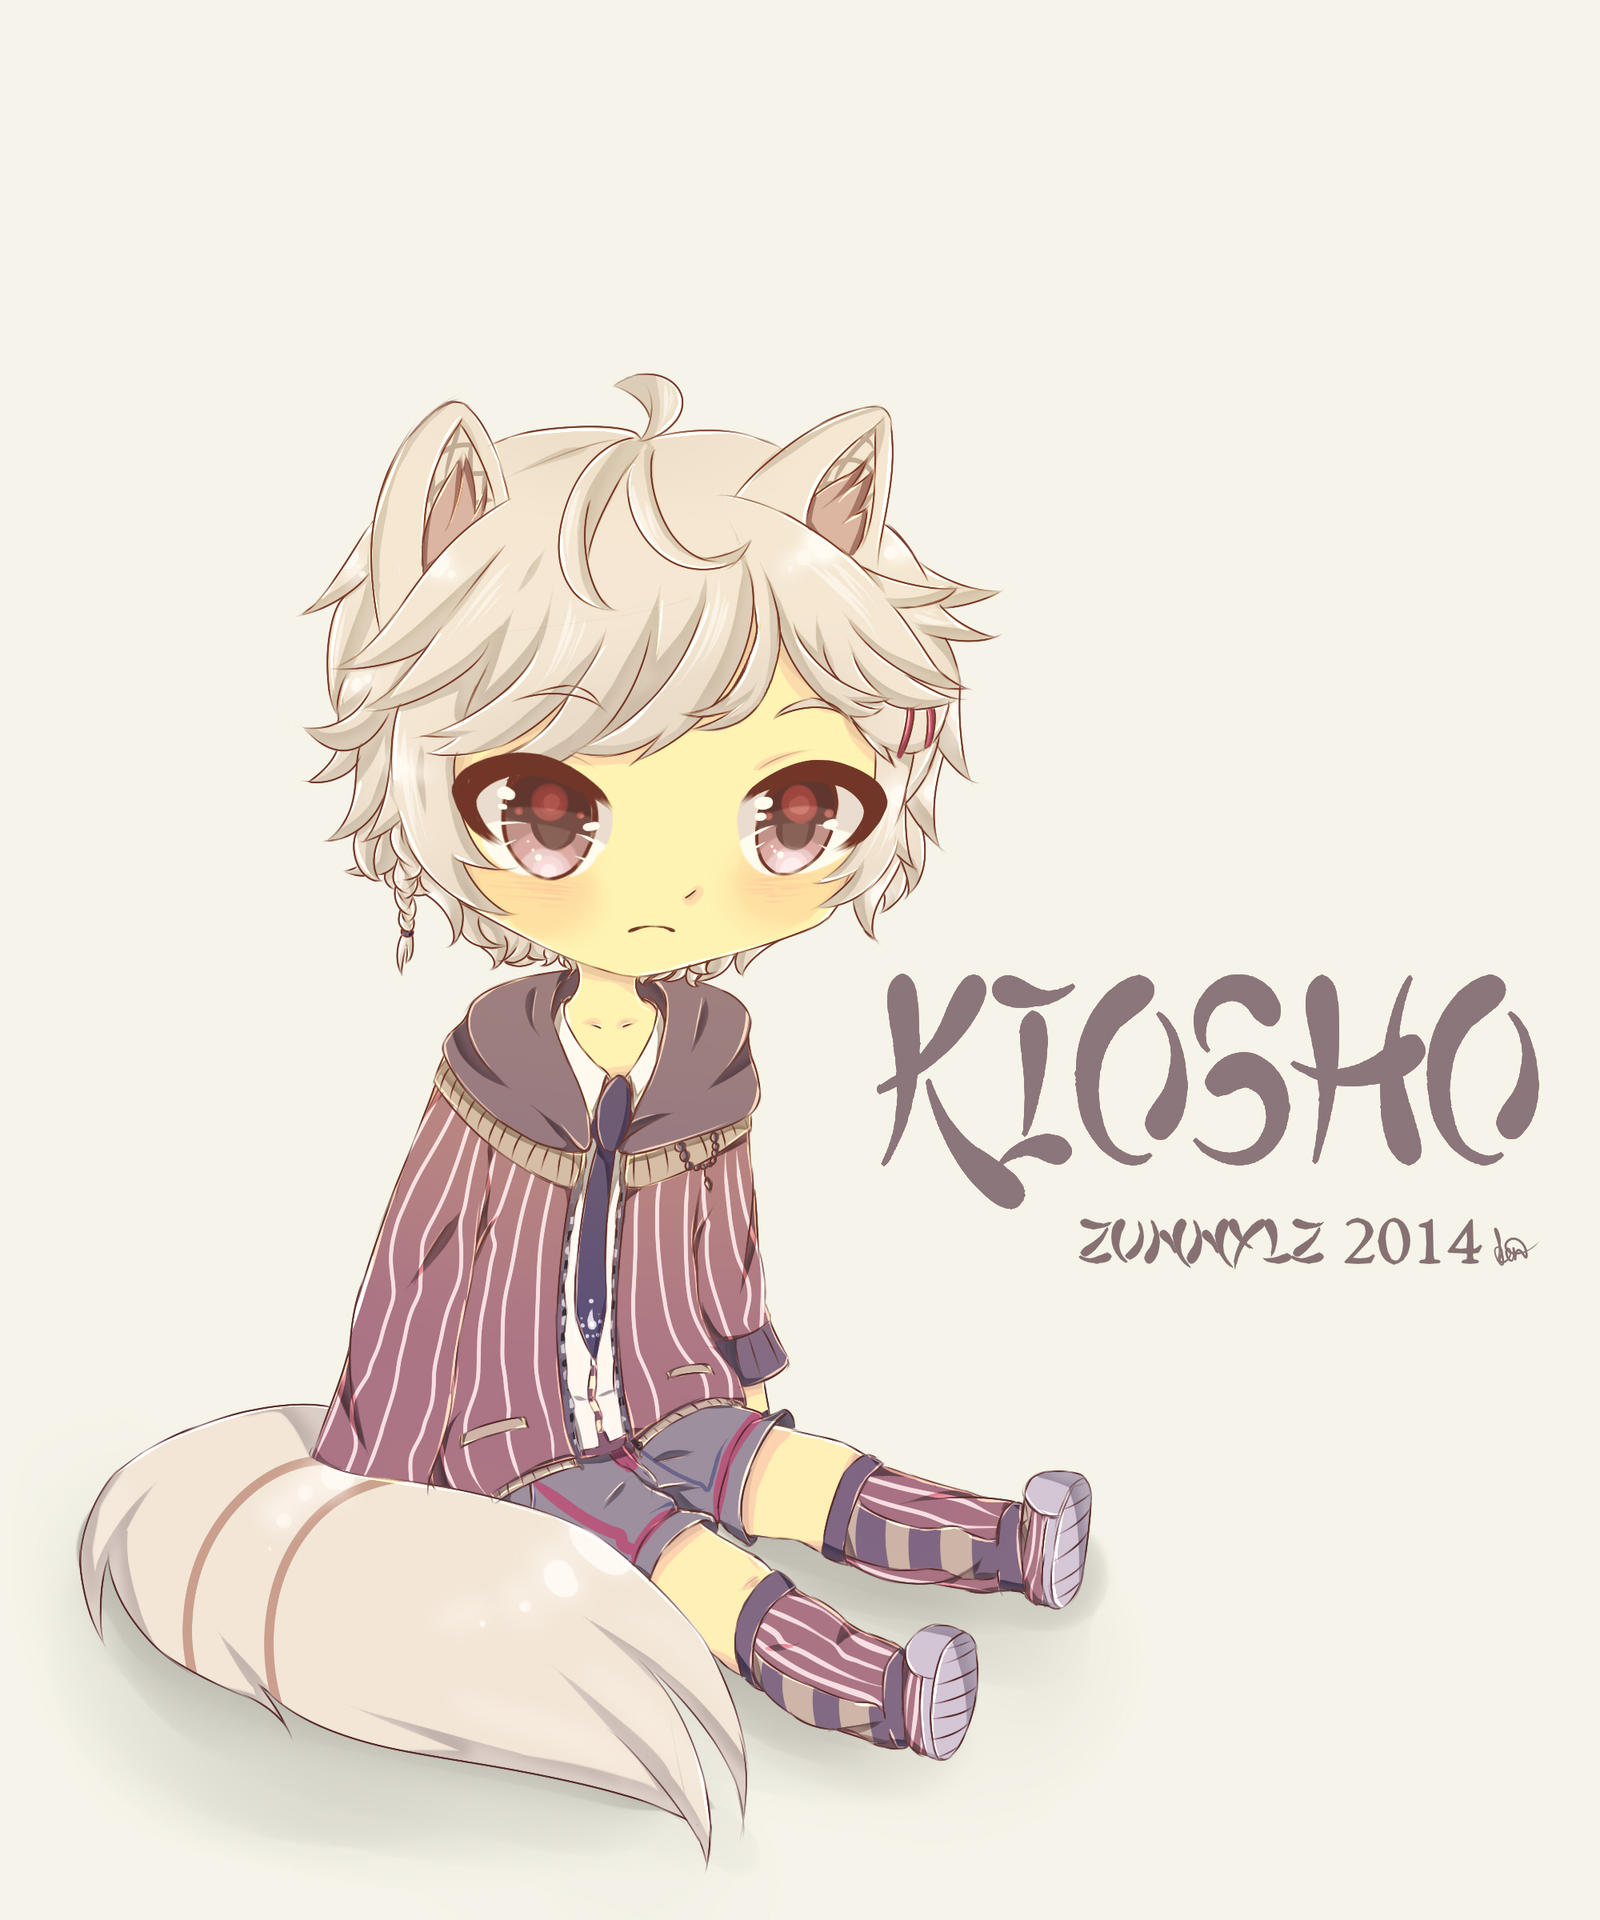 Kiosho by Leniuu